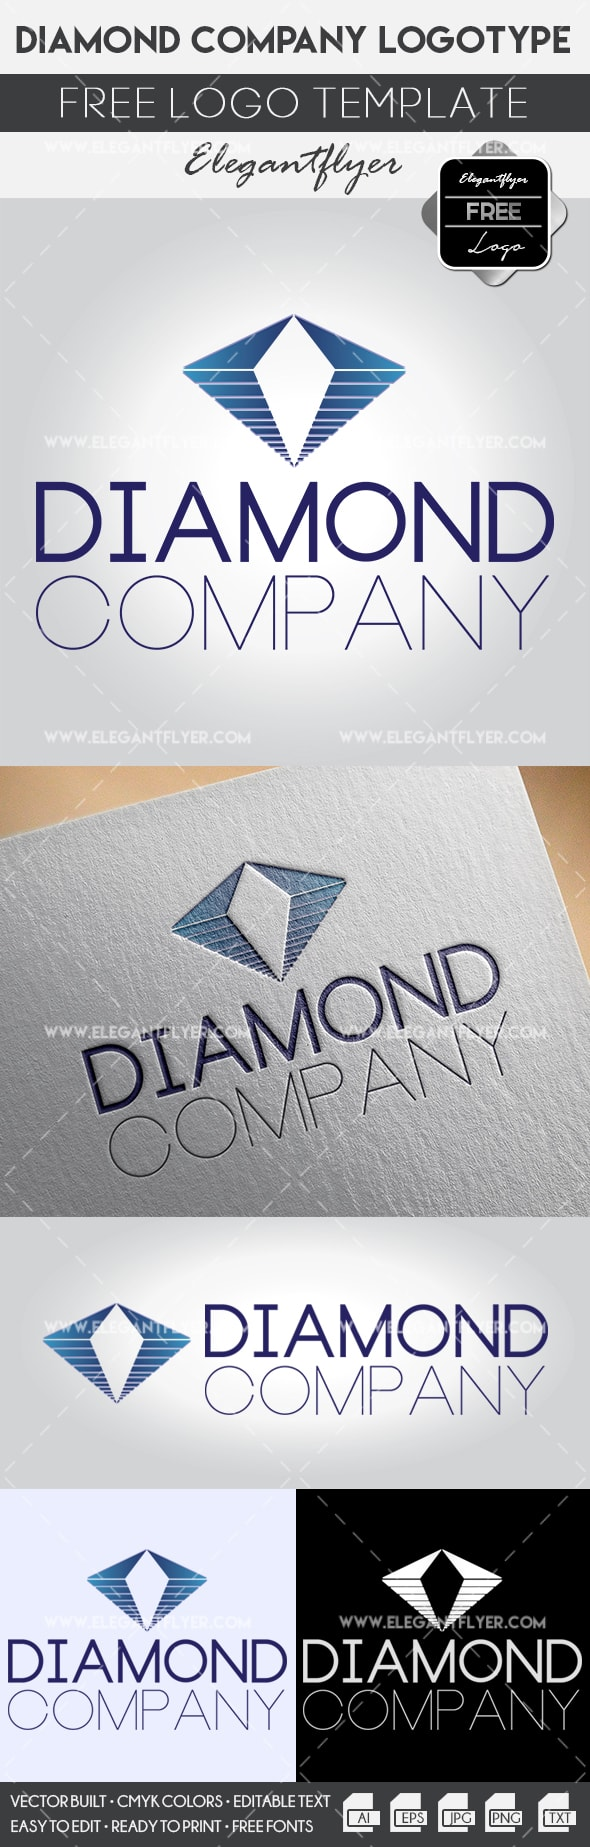 Diamond Company – Free Logo Templates